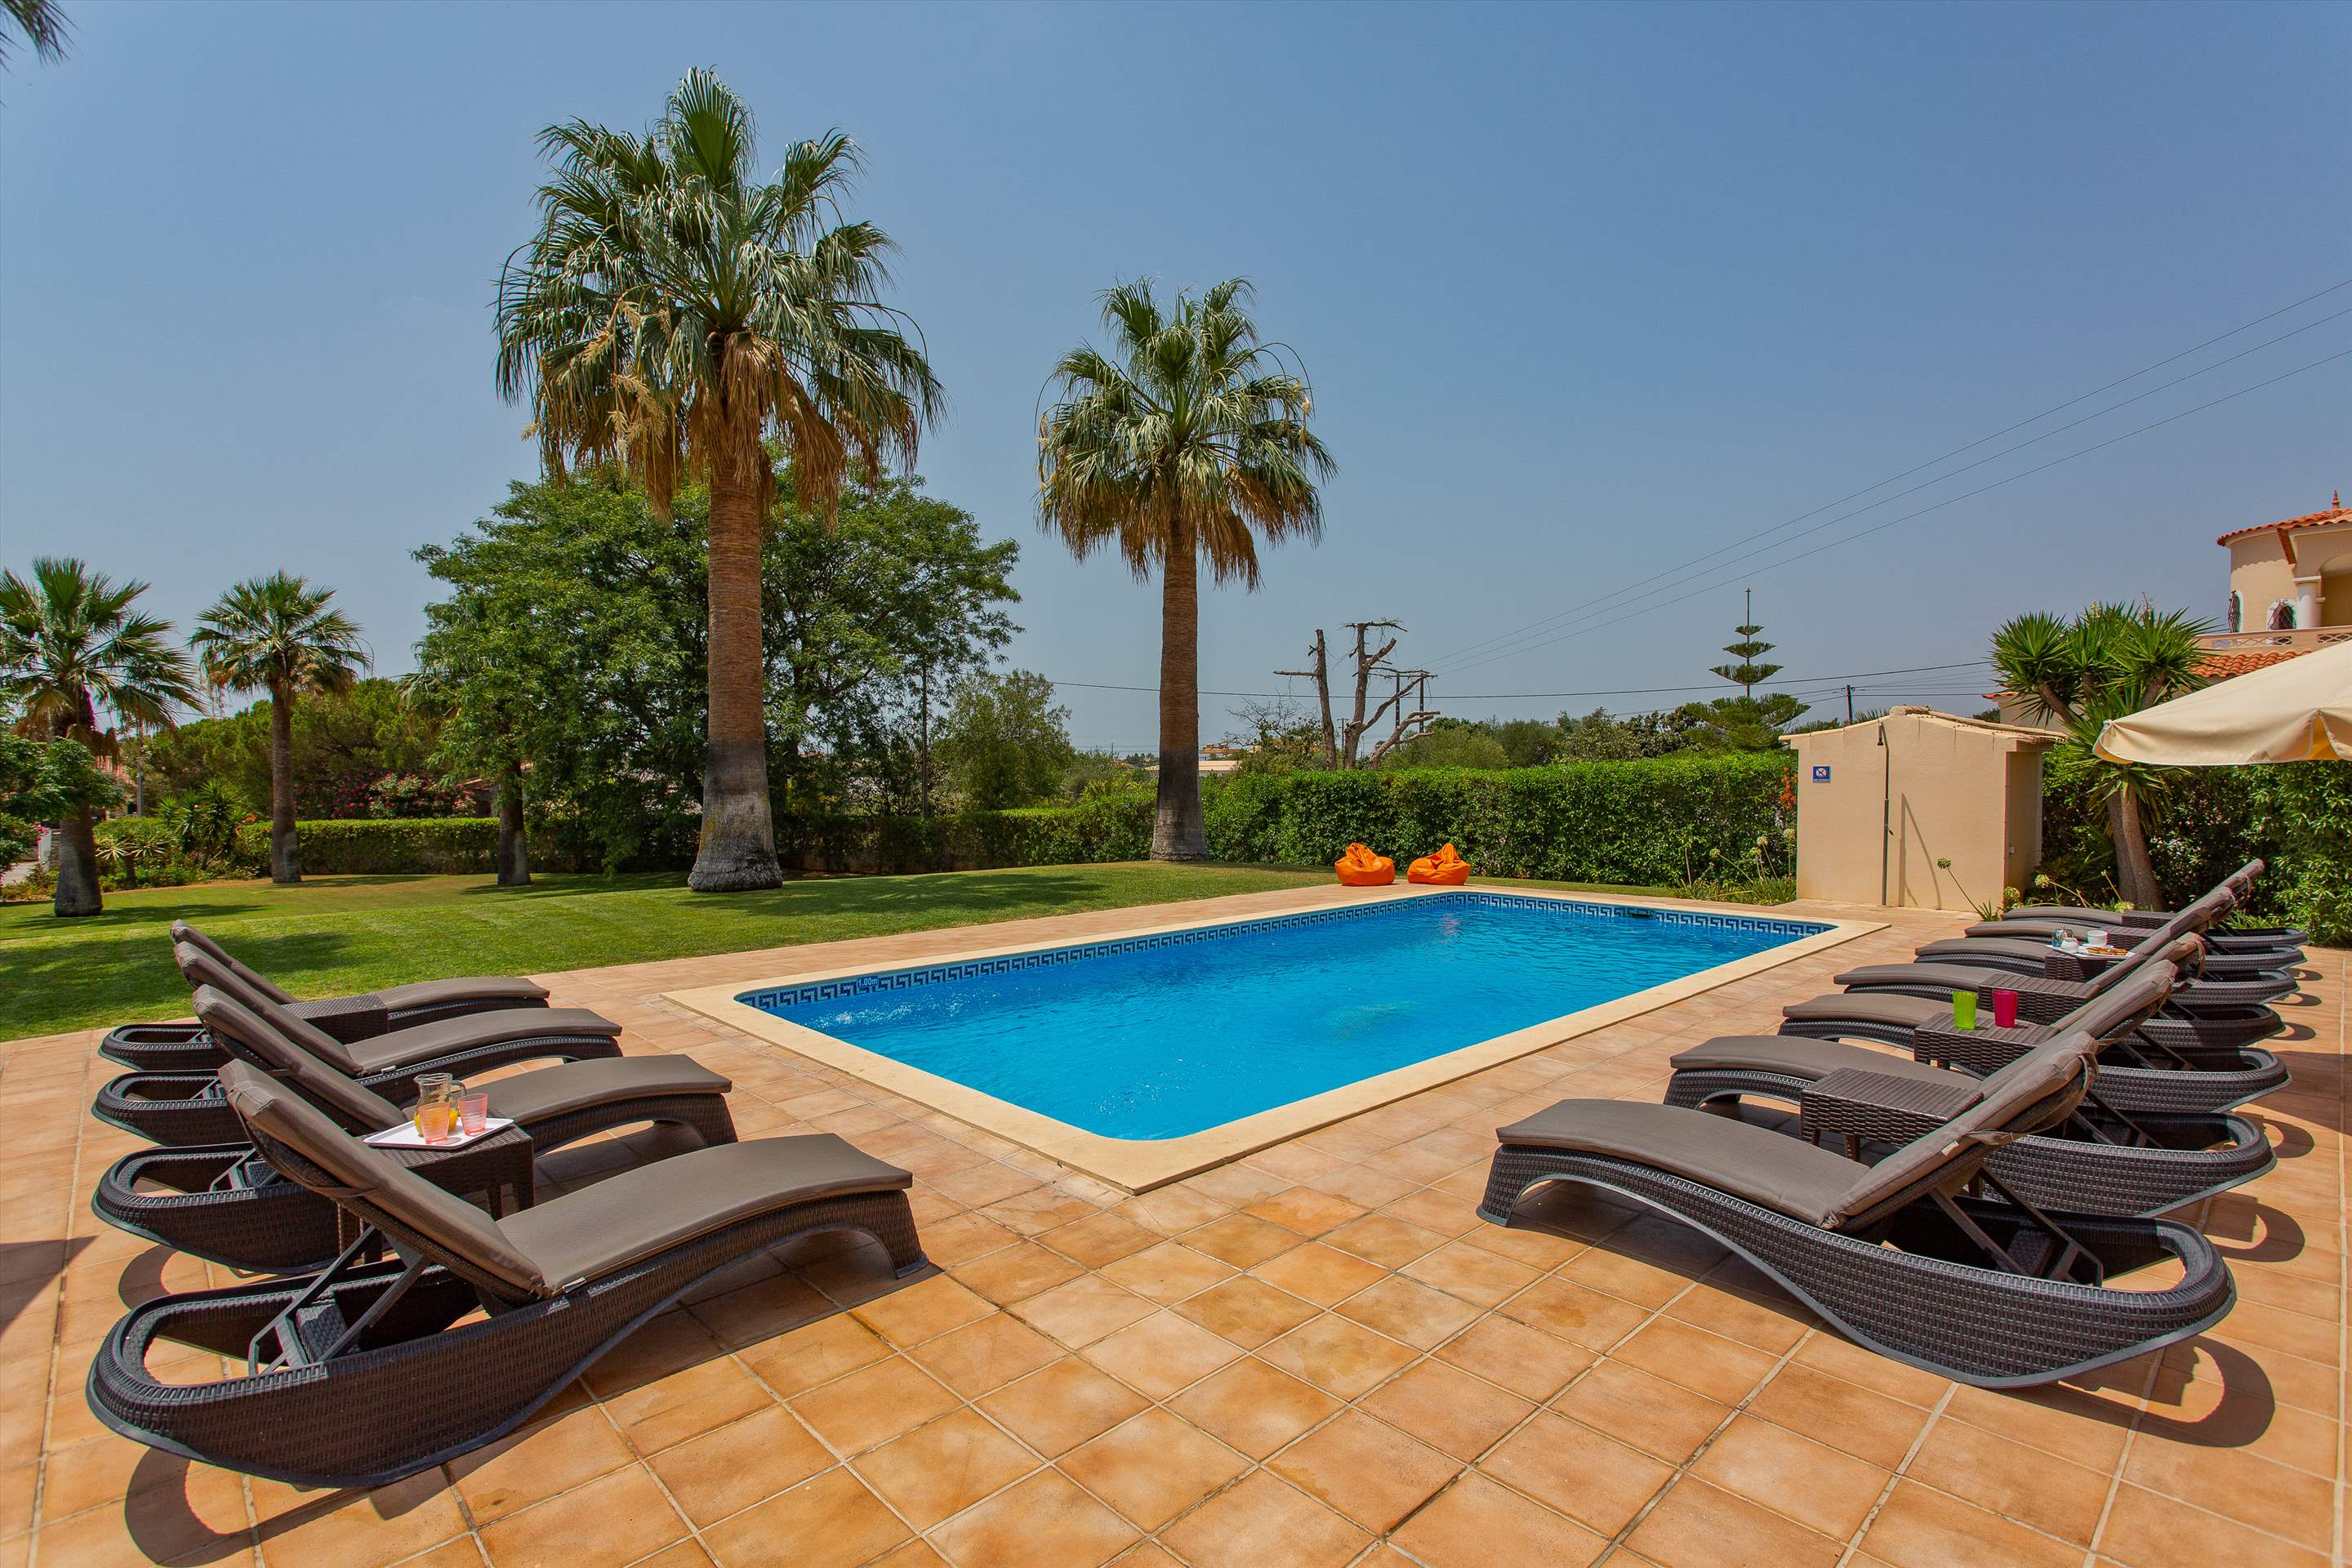 Quinta do Bruno, Eight Bedroom Rate including annexes, 8 bedroom villa in Vilamoura Area, Algarve Photo #2